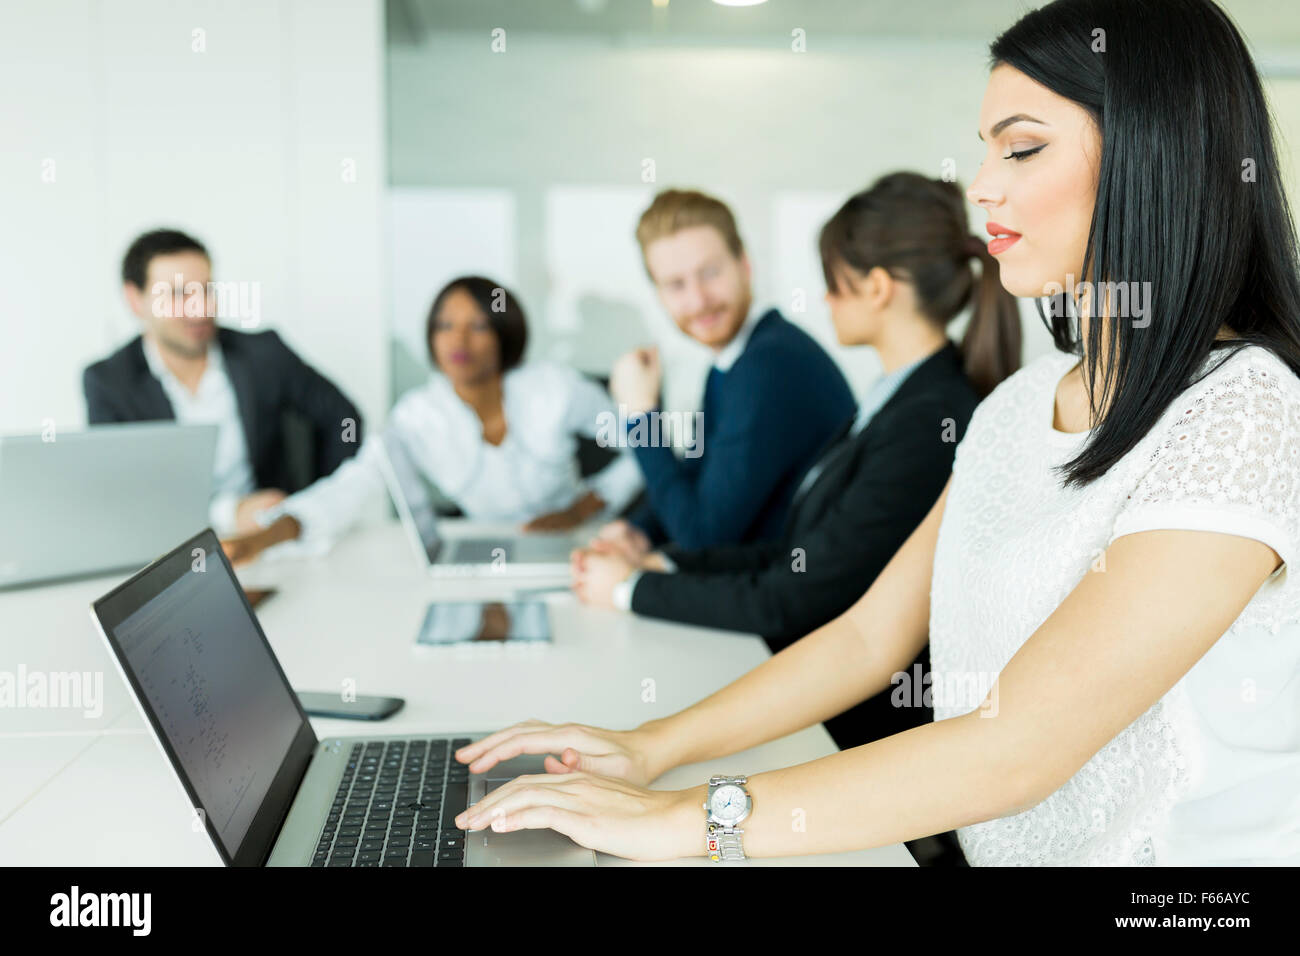 Businesswoman working on a laptop in an office during brainstorming - Stock Image